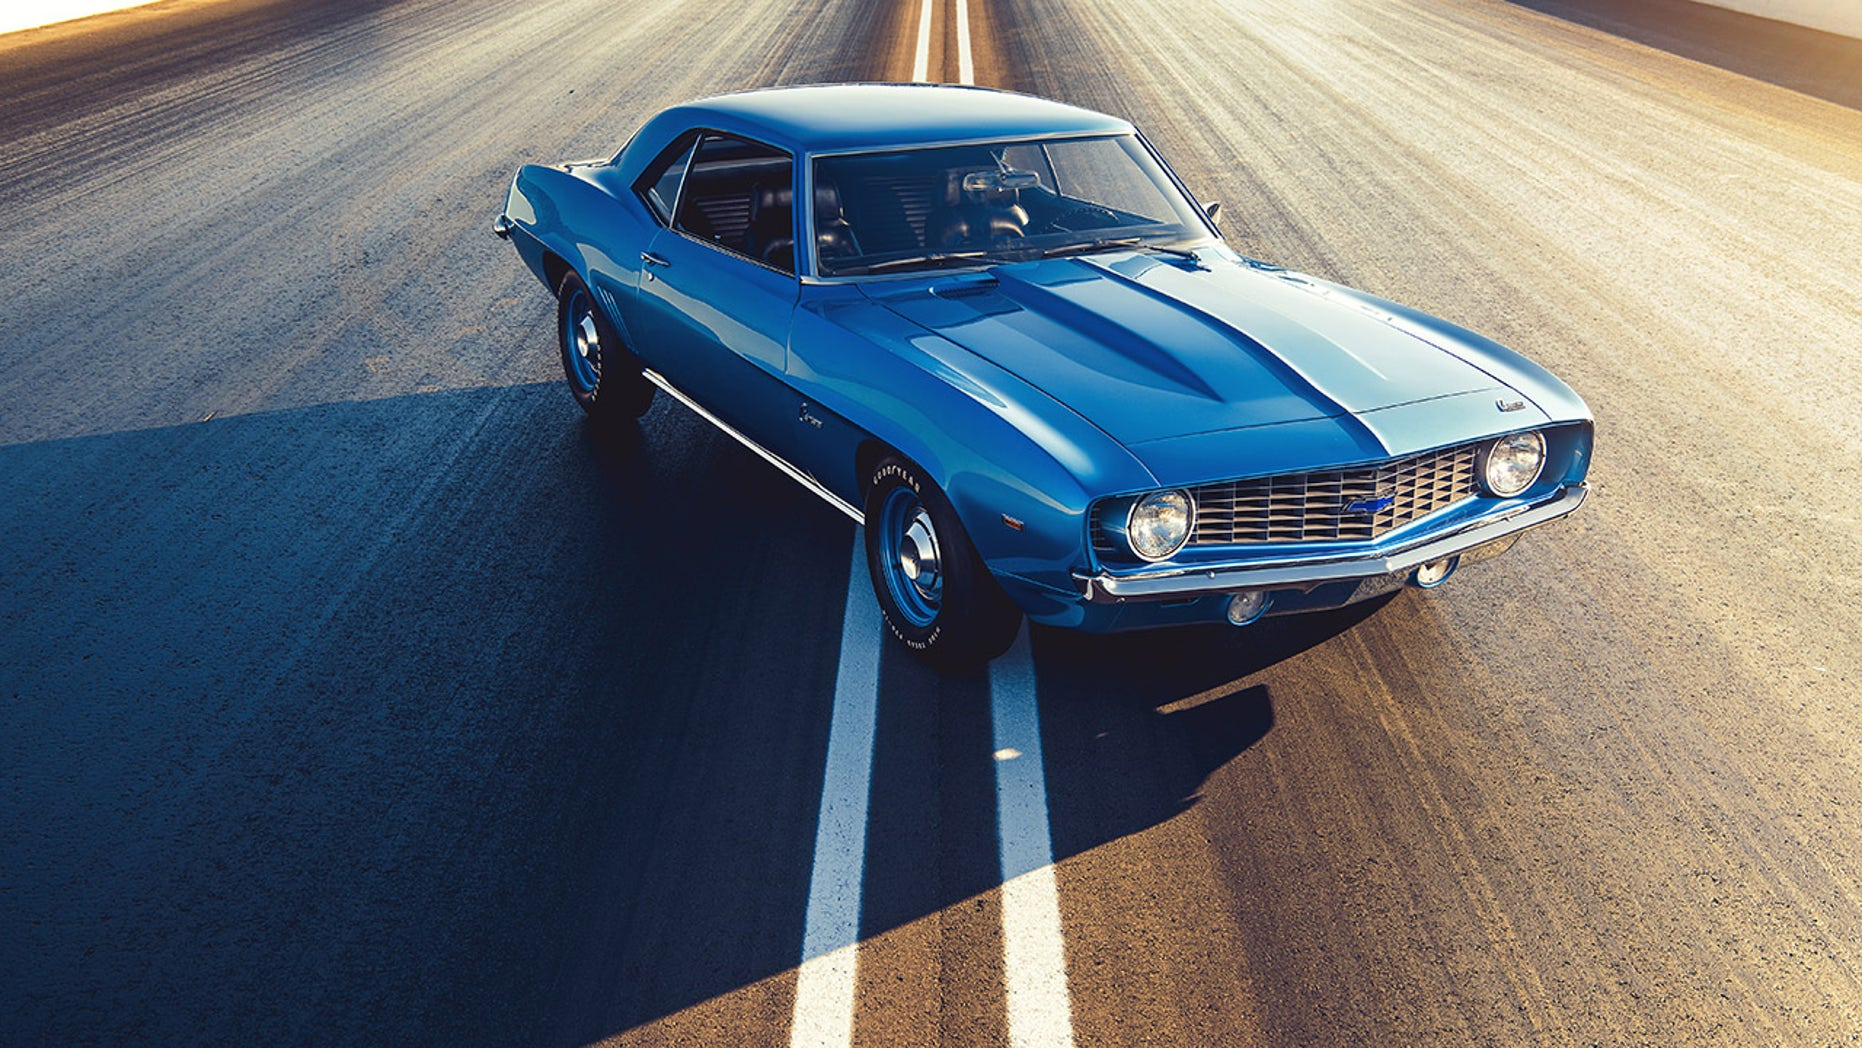 The 1969 COPO Camaro was a special-order performer. Only 69 were built with the all-aluminum ZL1 427 Big Block engine.